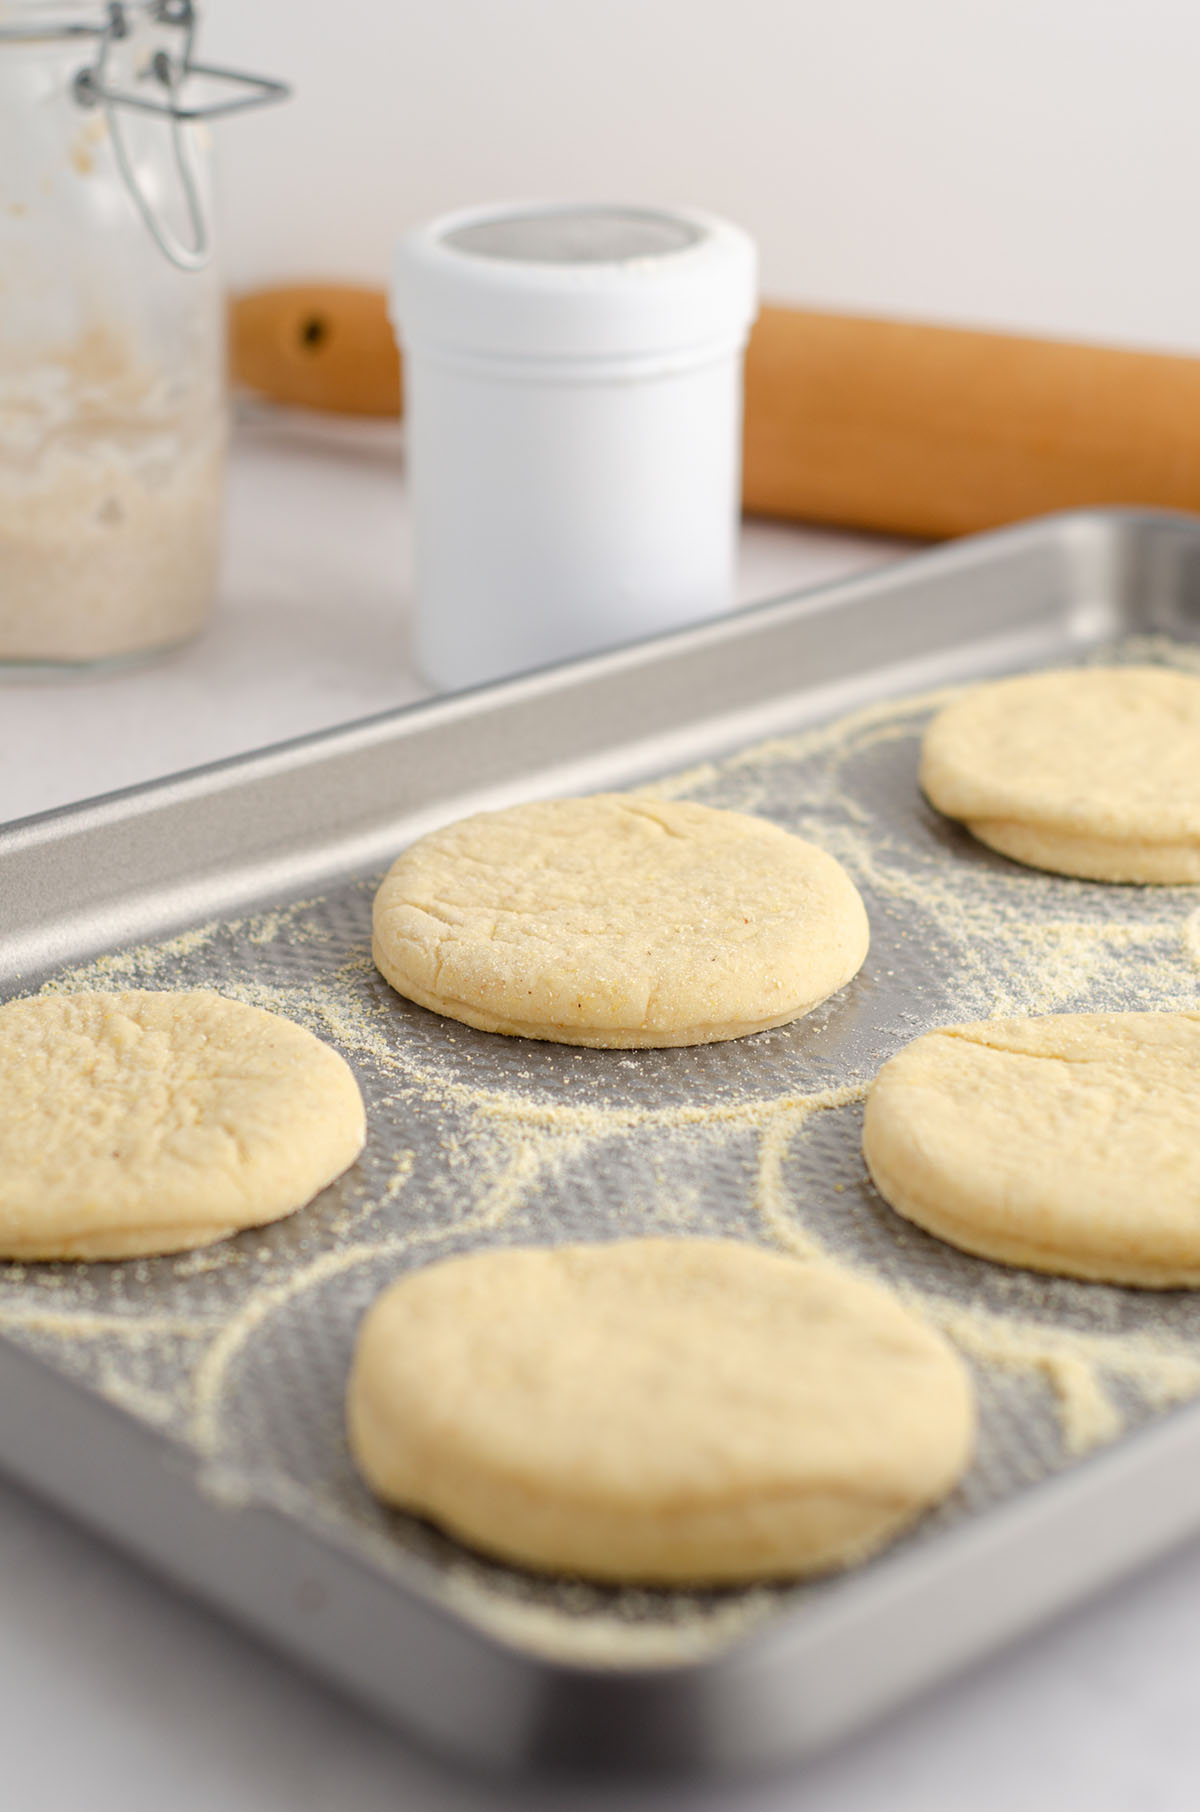 sourdough english muffin dough sitting on a baking sheet with cornmeal ready to cook